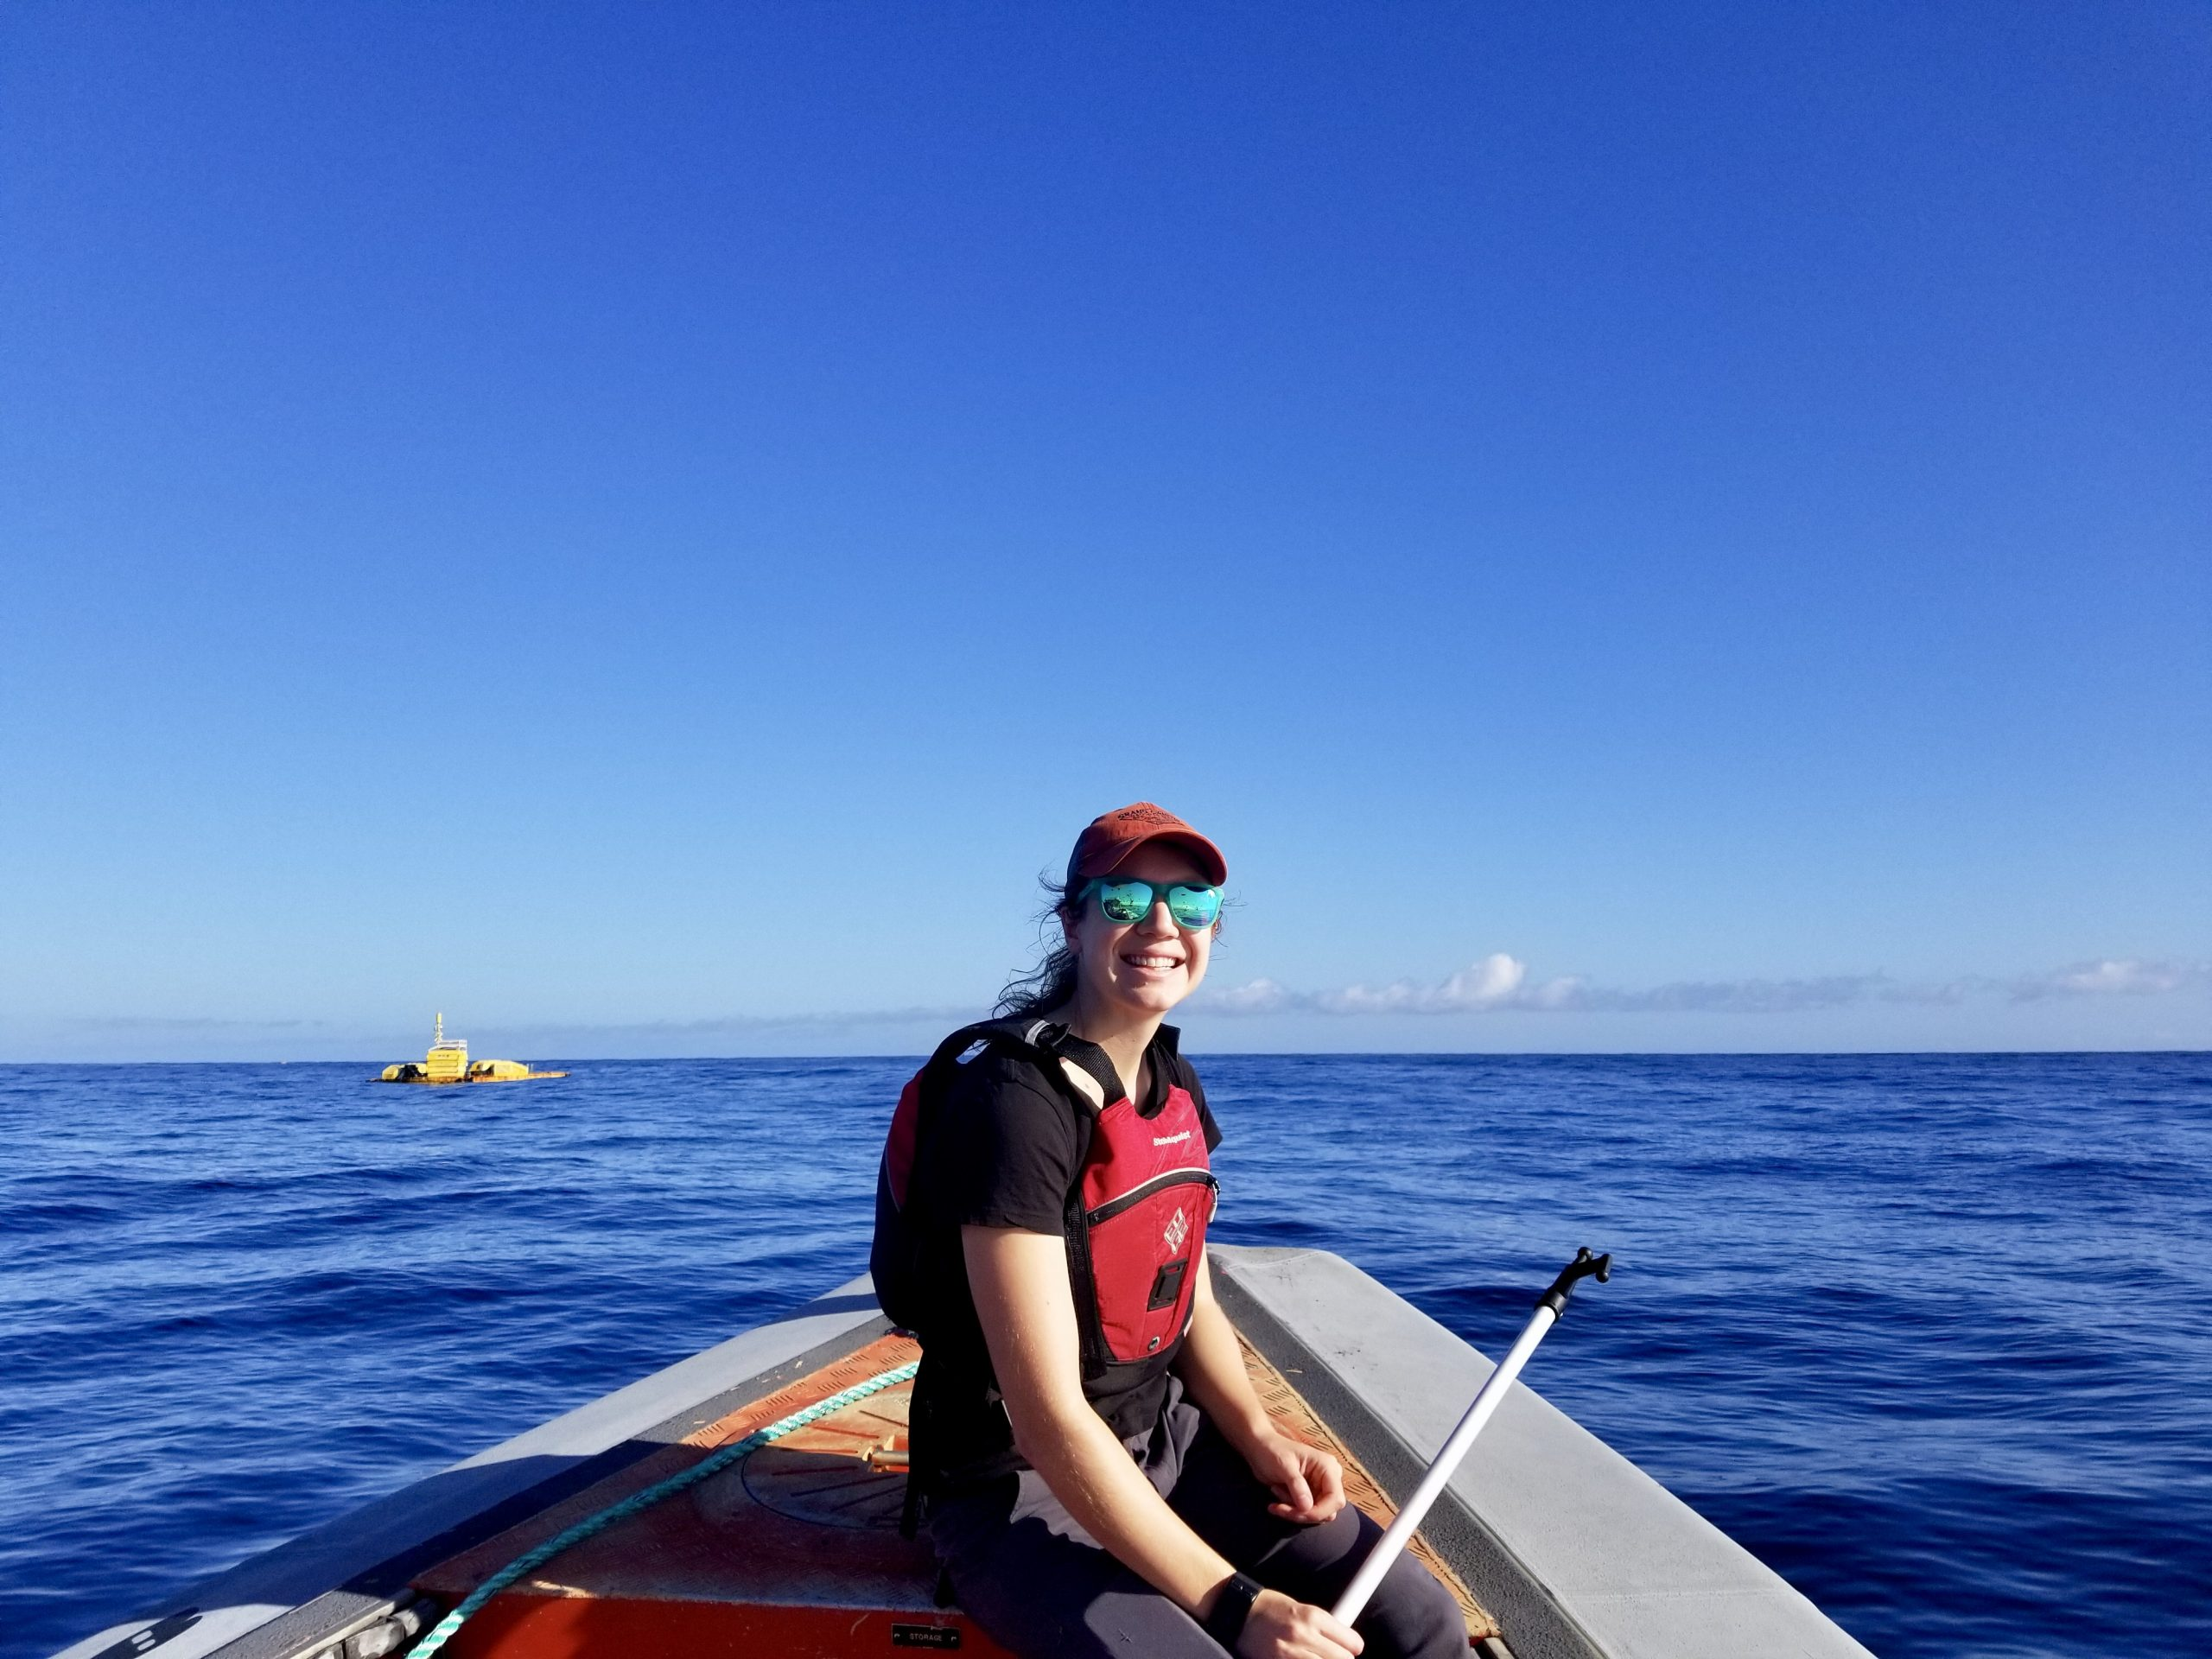 As part of her graduate work at the University of Washington, Cotter collects acoustic data at the Wave Energy Test Site in Kaneohe Bay, HI. Photo credit: James Joslin (APL/UW)